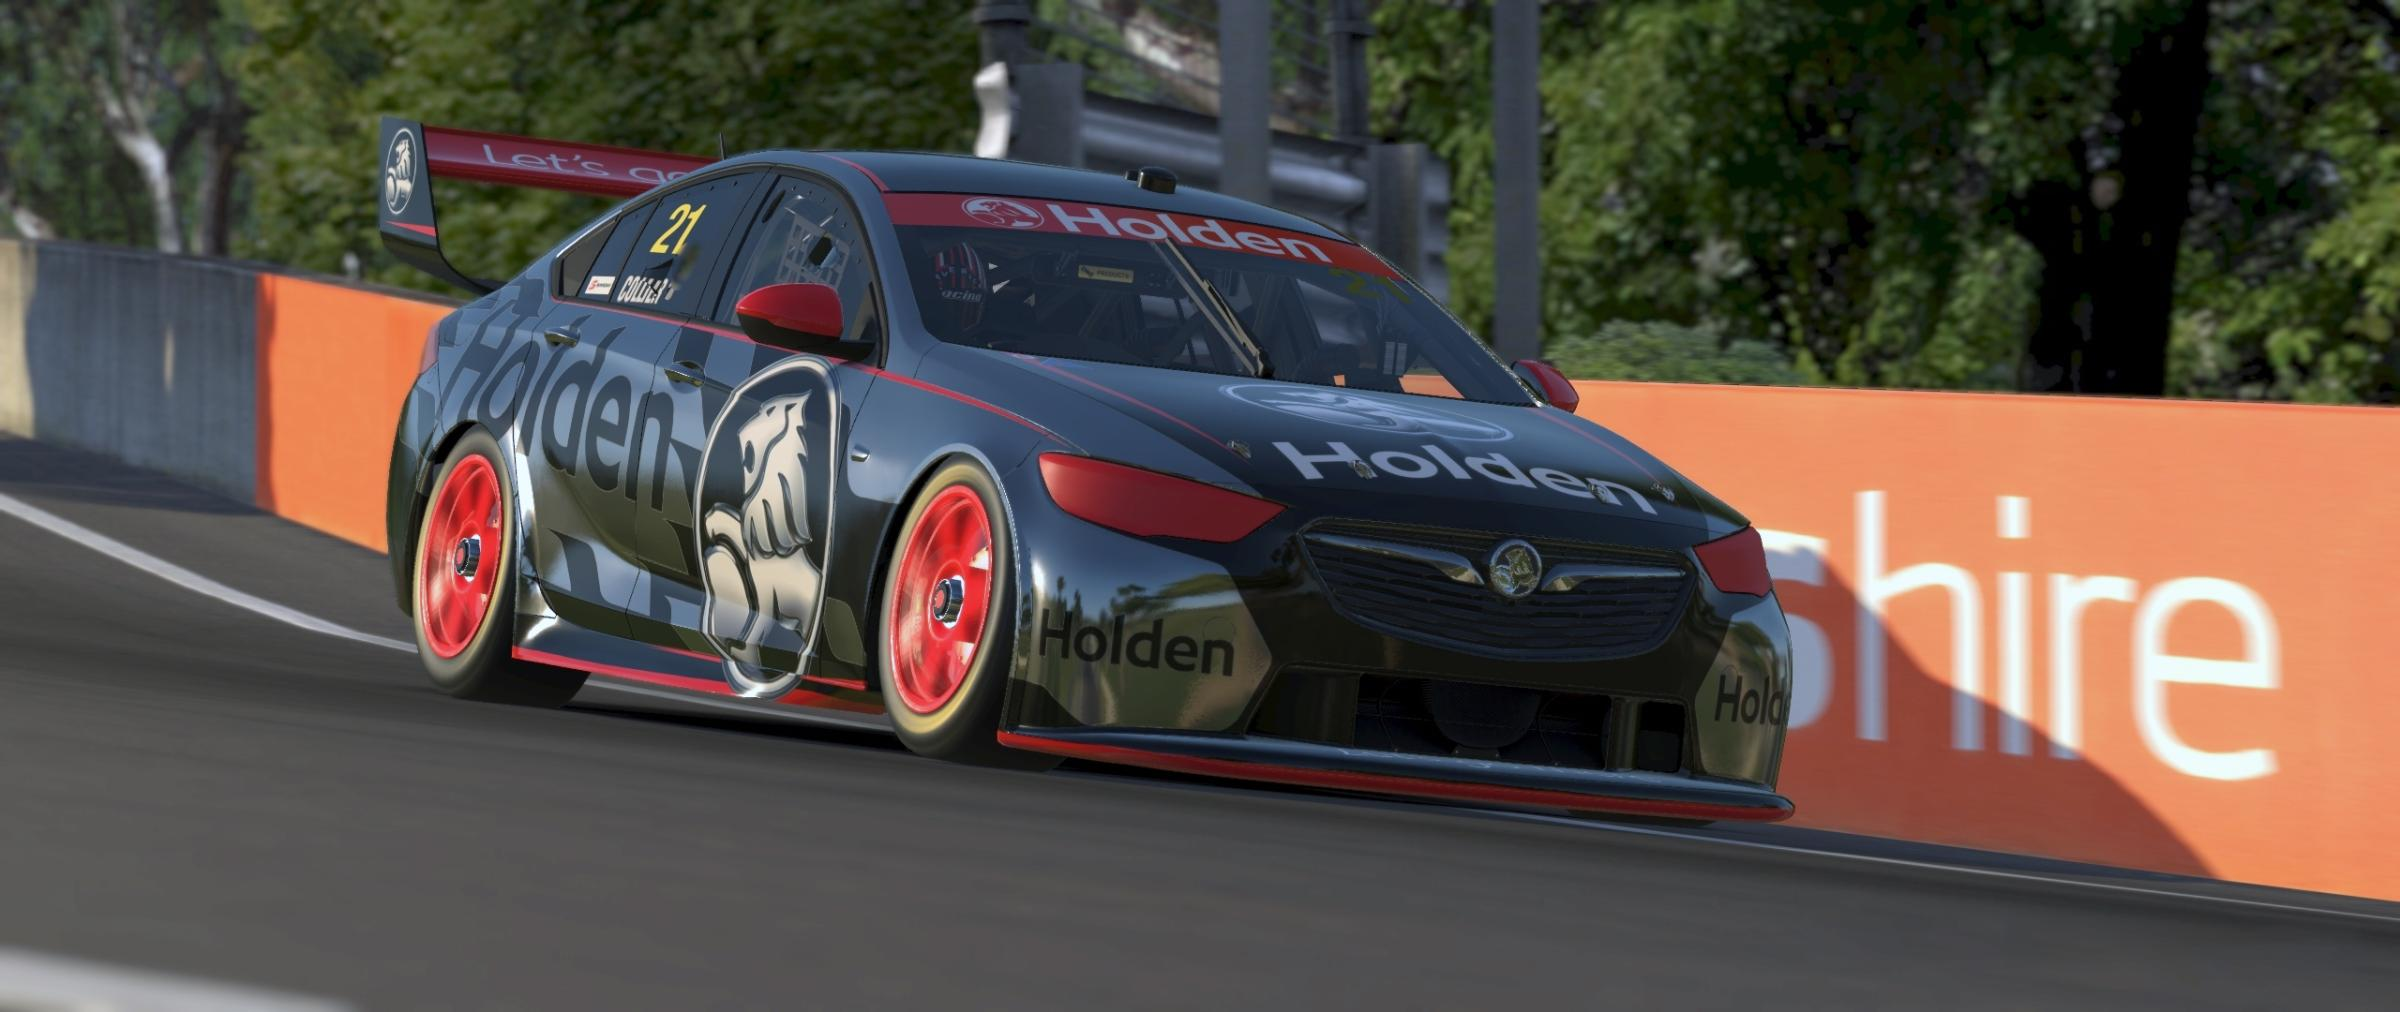 Preview of Holden - Commodore Supercar by Timothy Collier